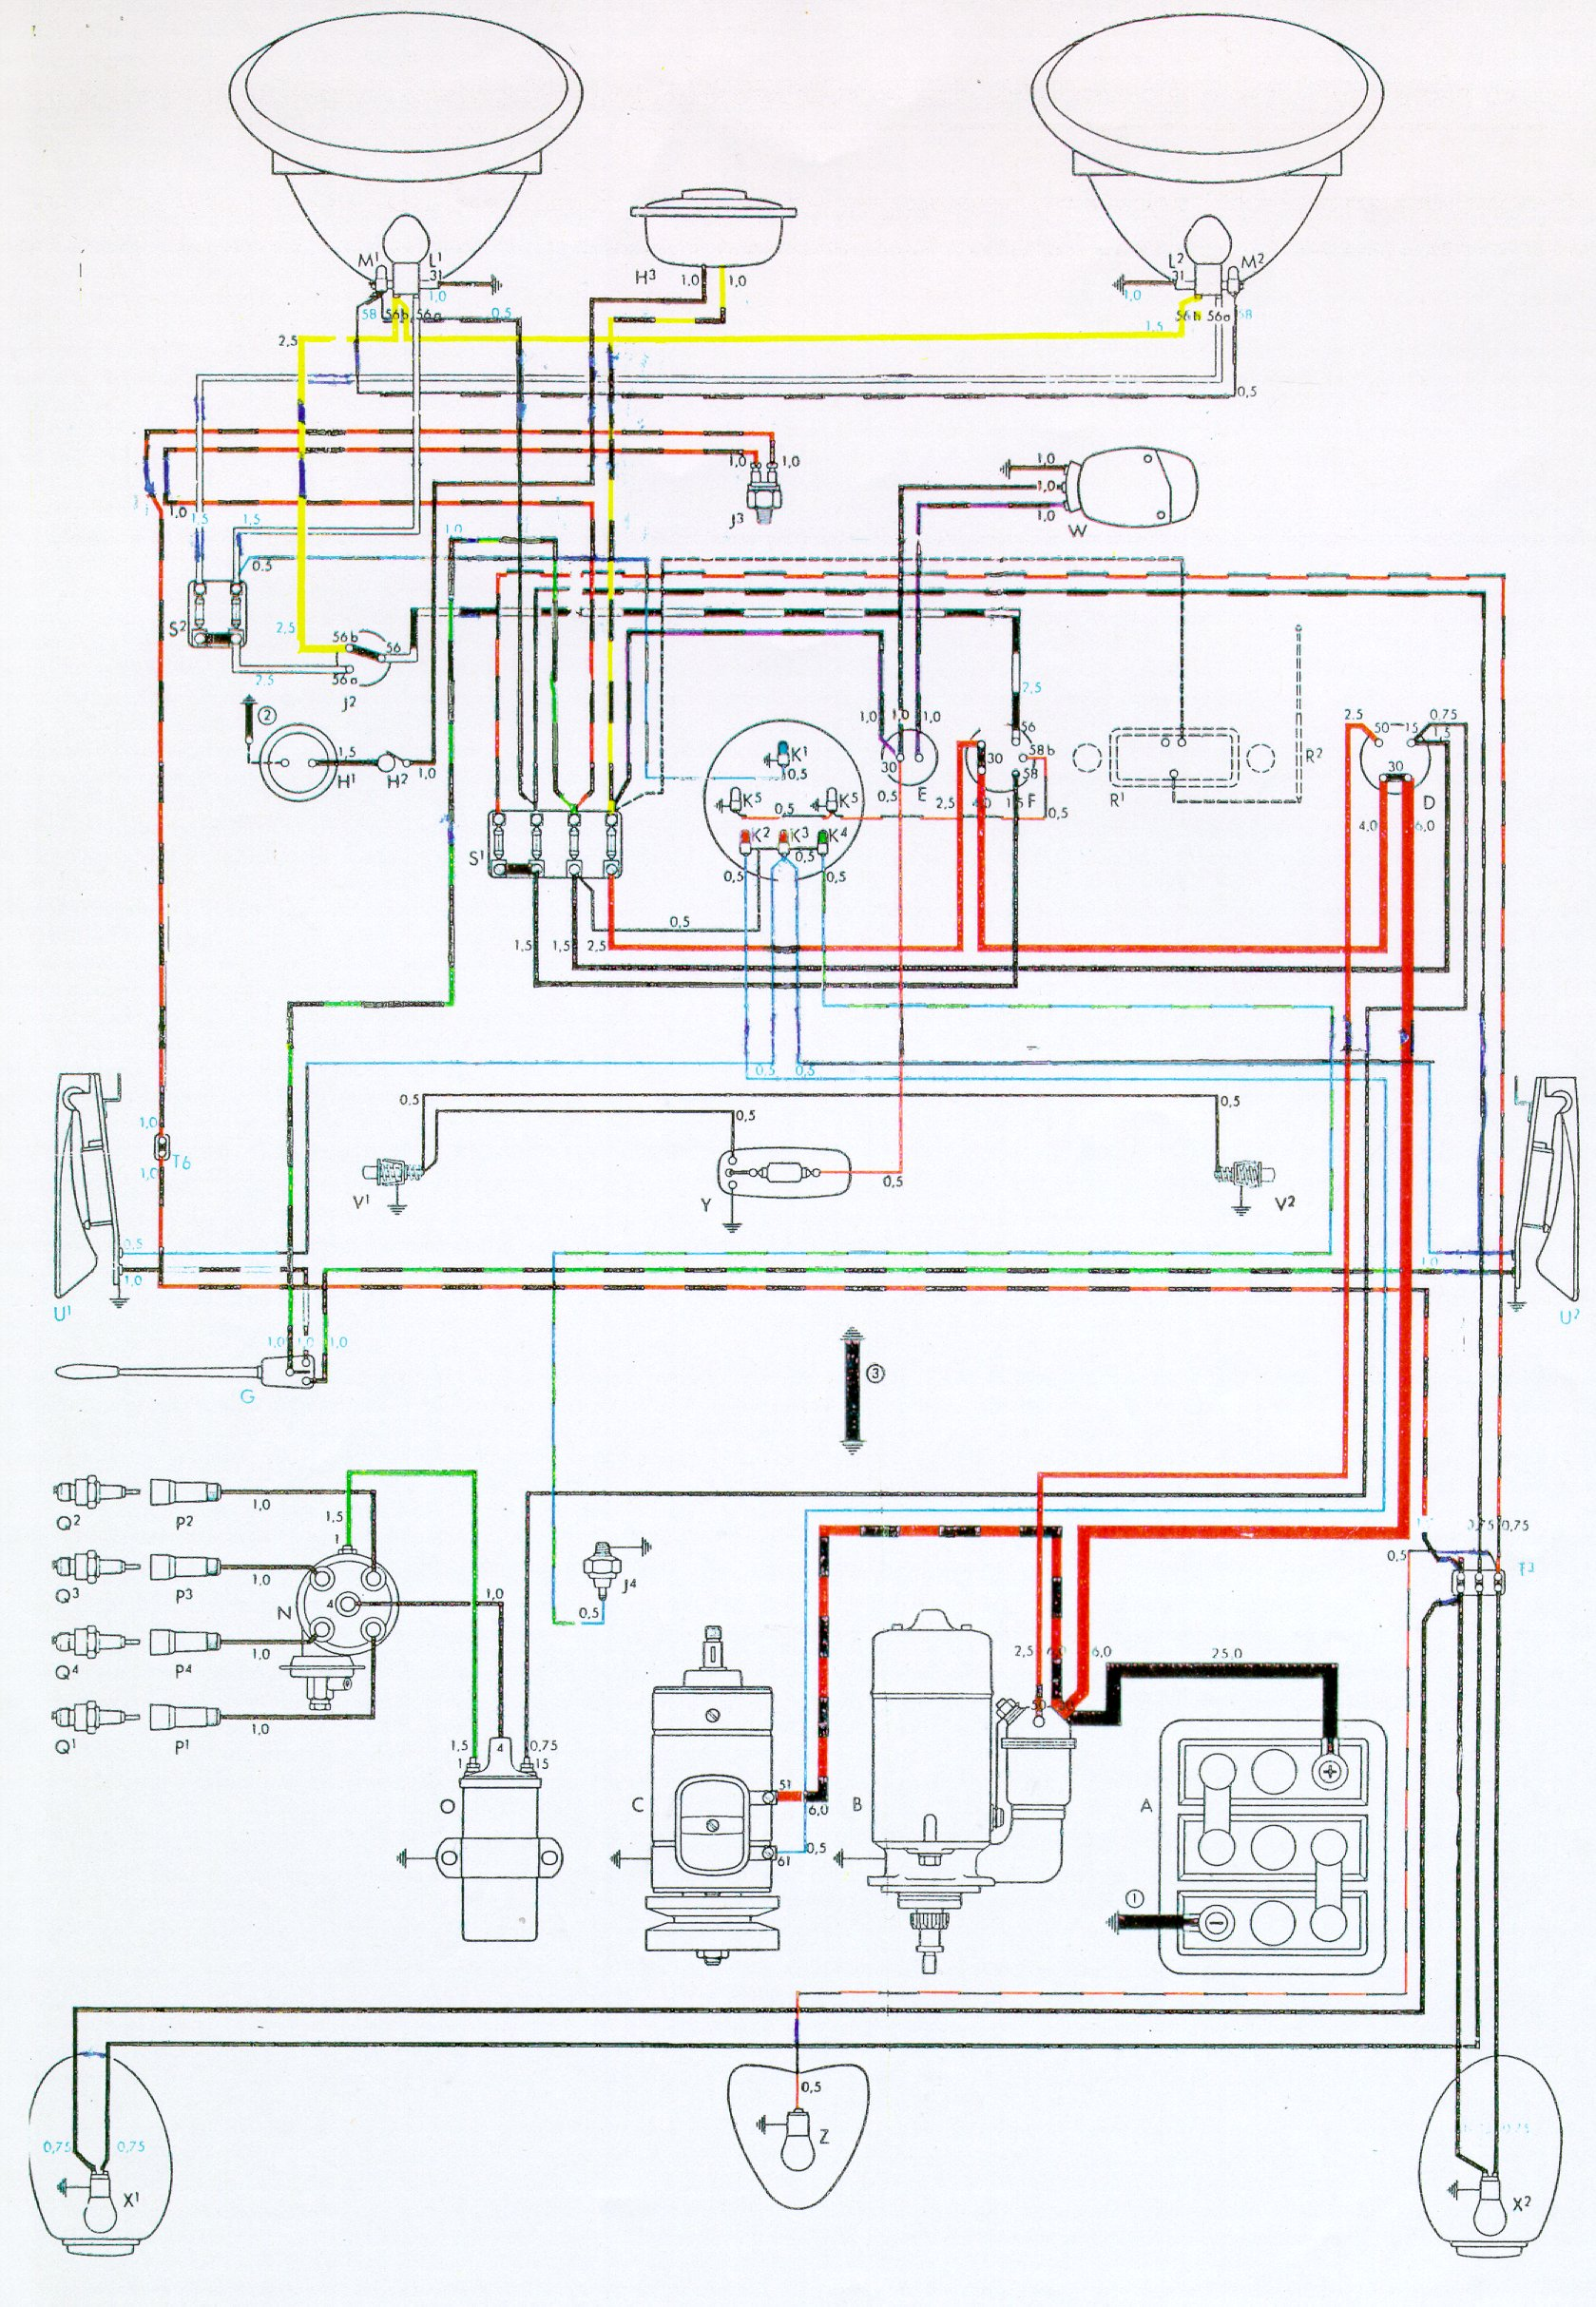 Bosch Alternator Wiring Diagram Chrysler